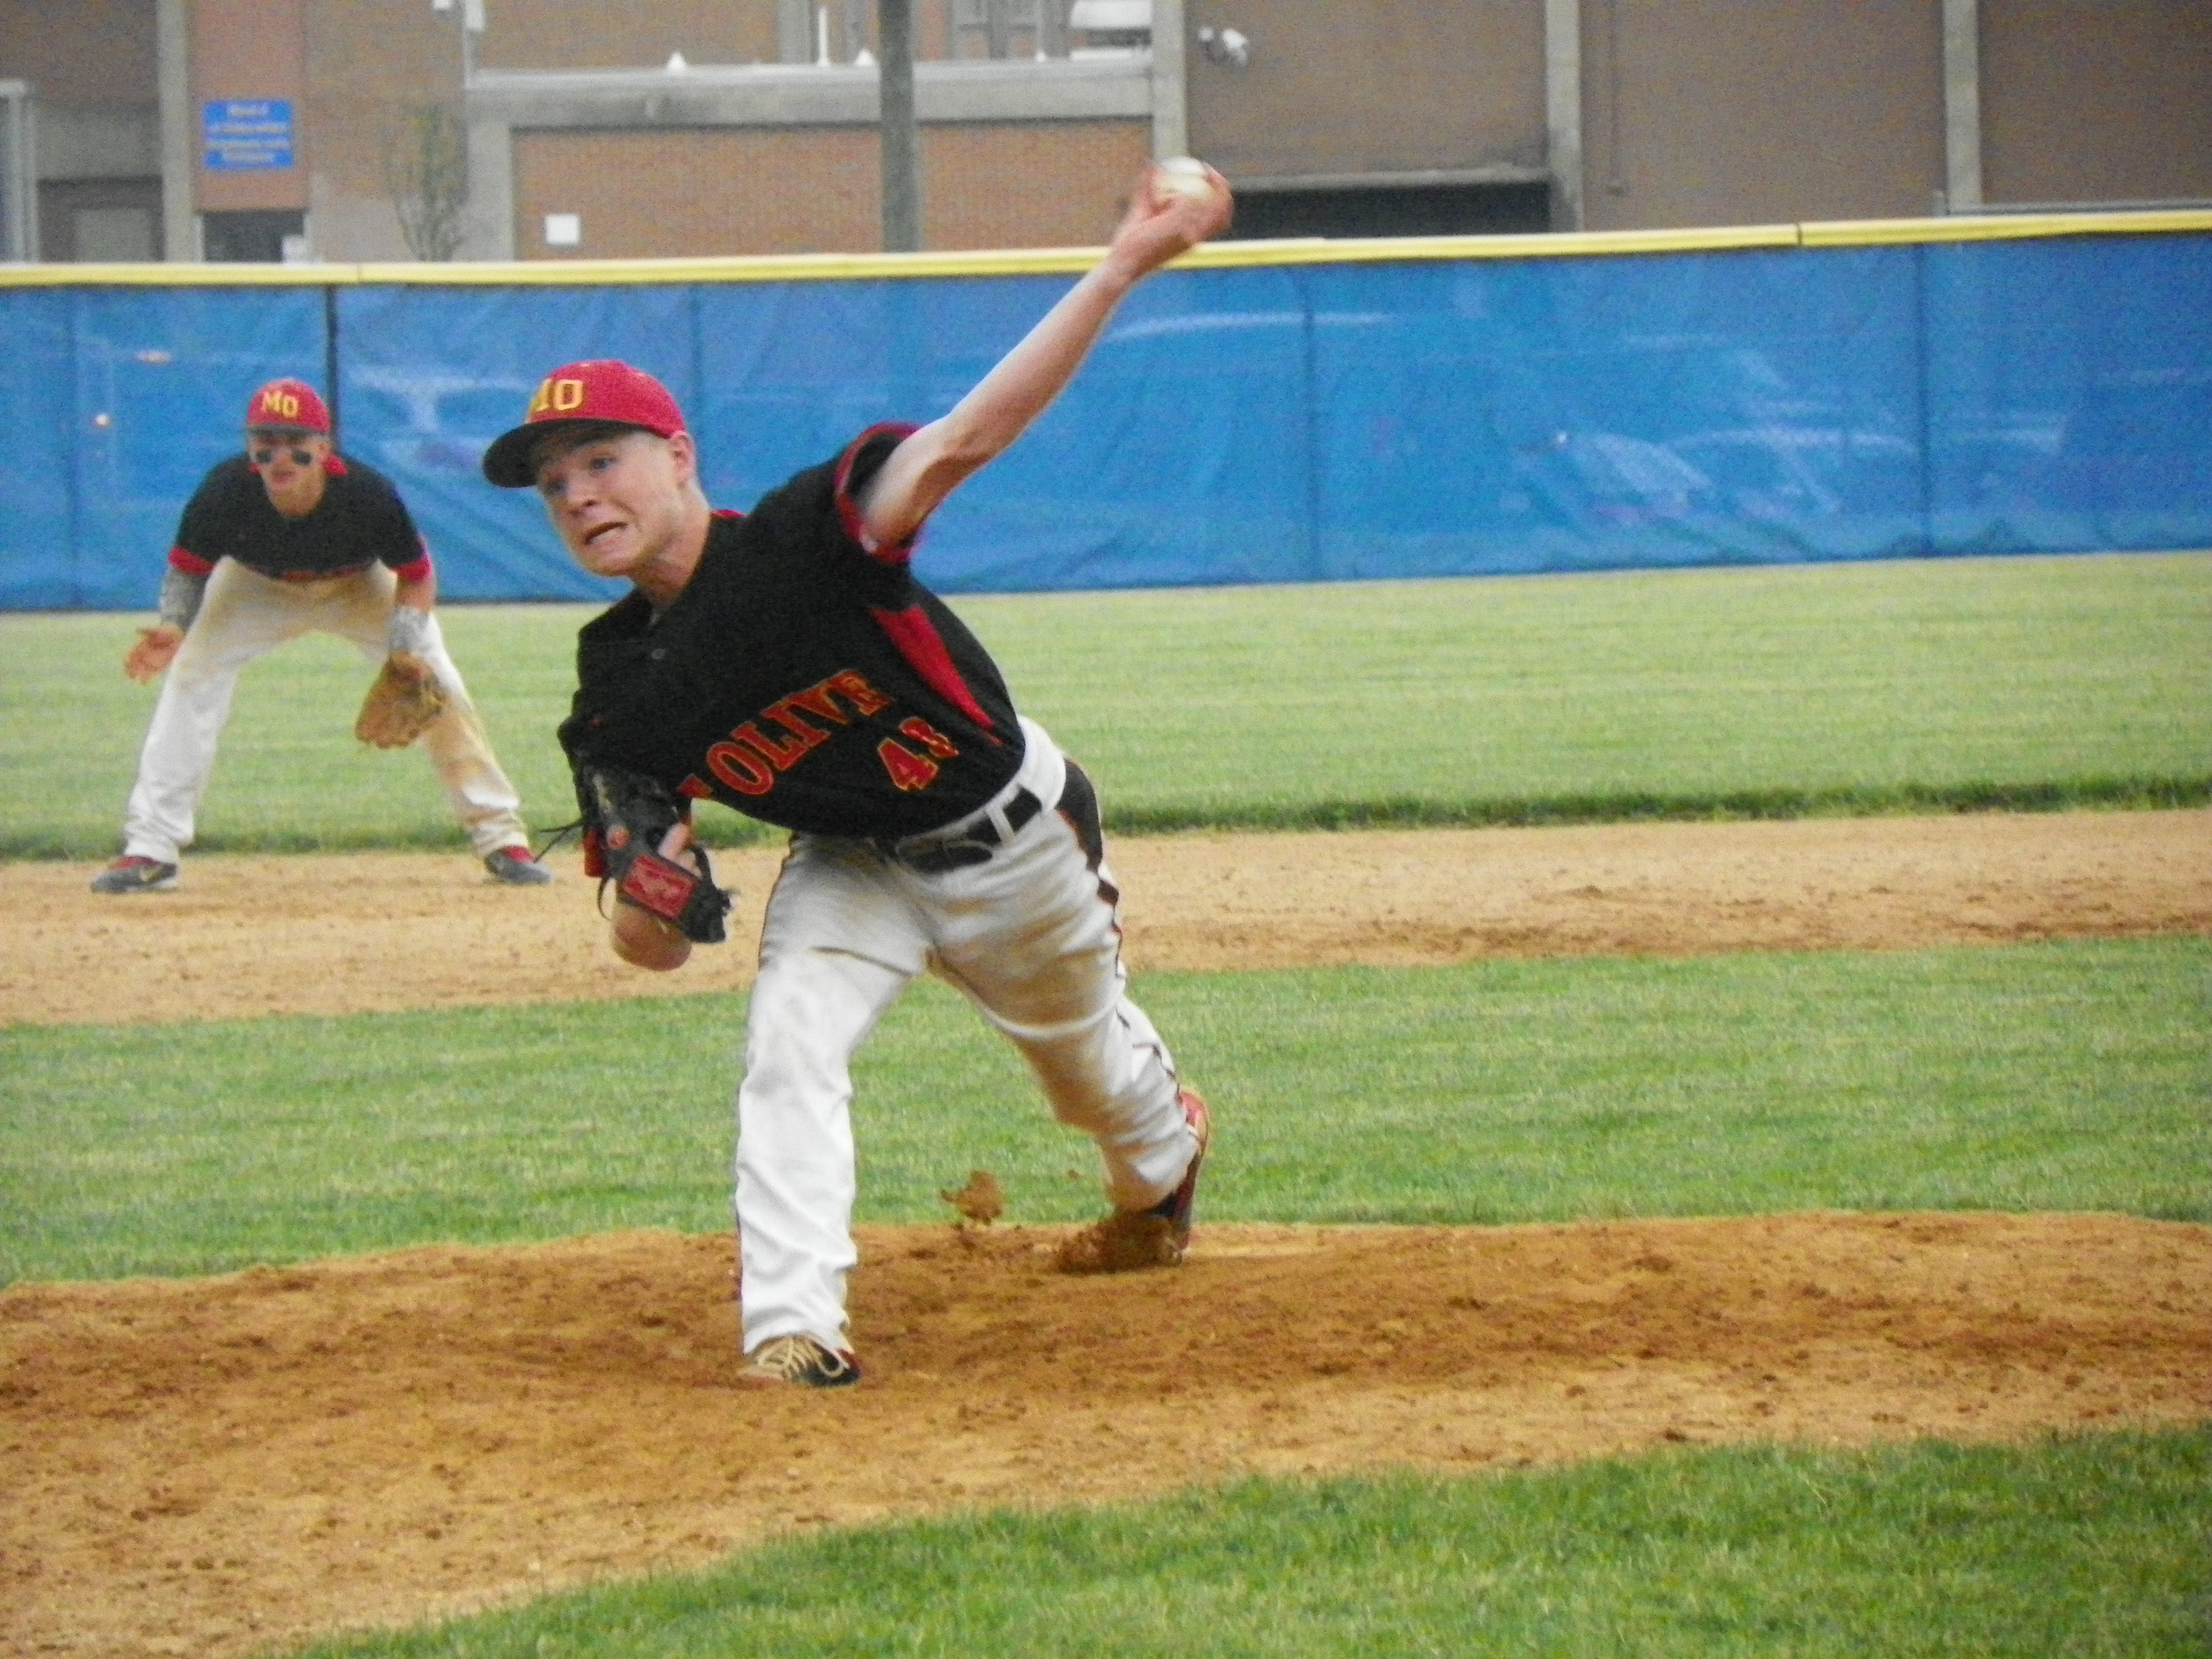 Mount Olive junior Connor Henry, the team's closer in 2014, is one of the main starters this season as the No. 14 seed Marauders have reached the Morris County Tournament semifinals.